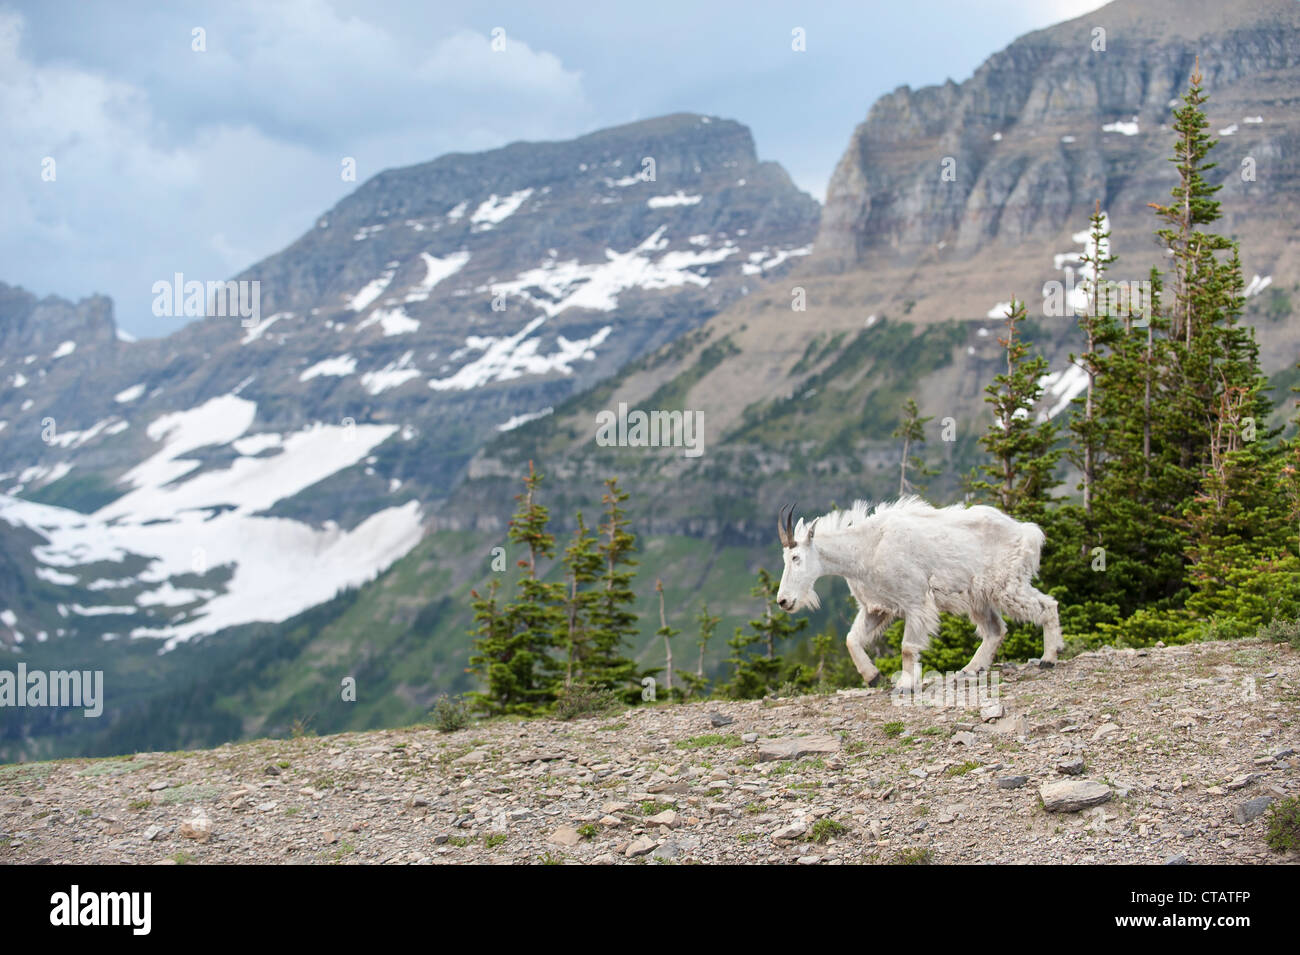 A mountain goat walks in front of the Garden Wall in Glacier National Park. - Stock Image